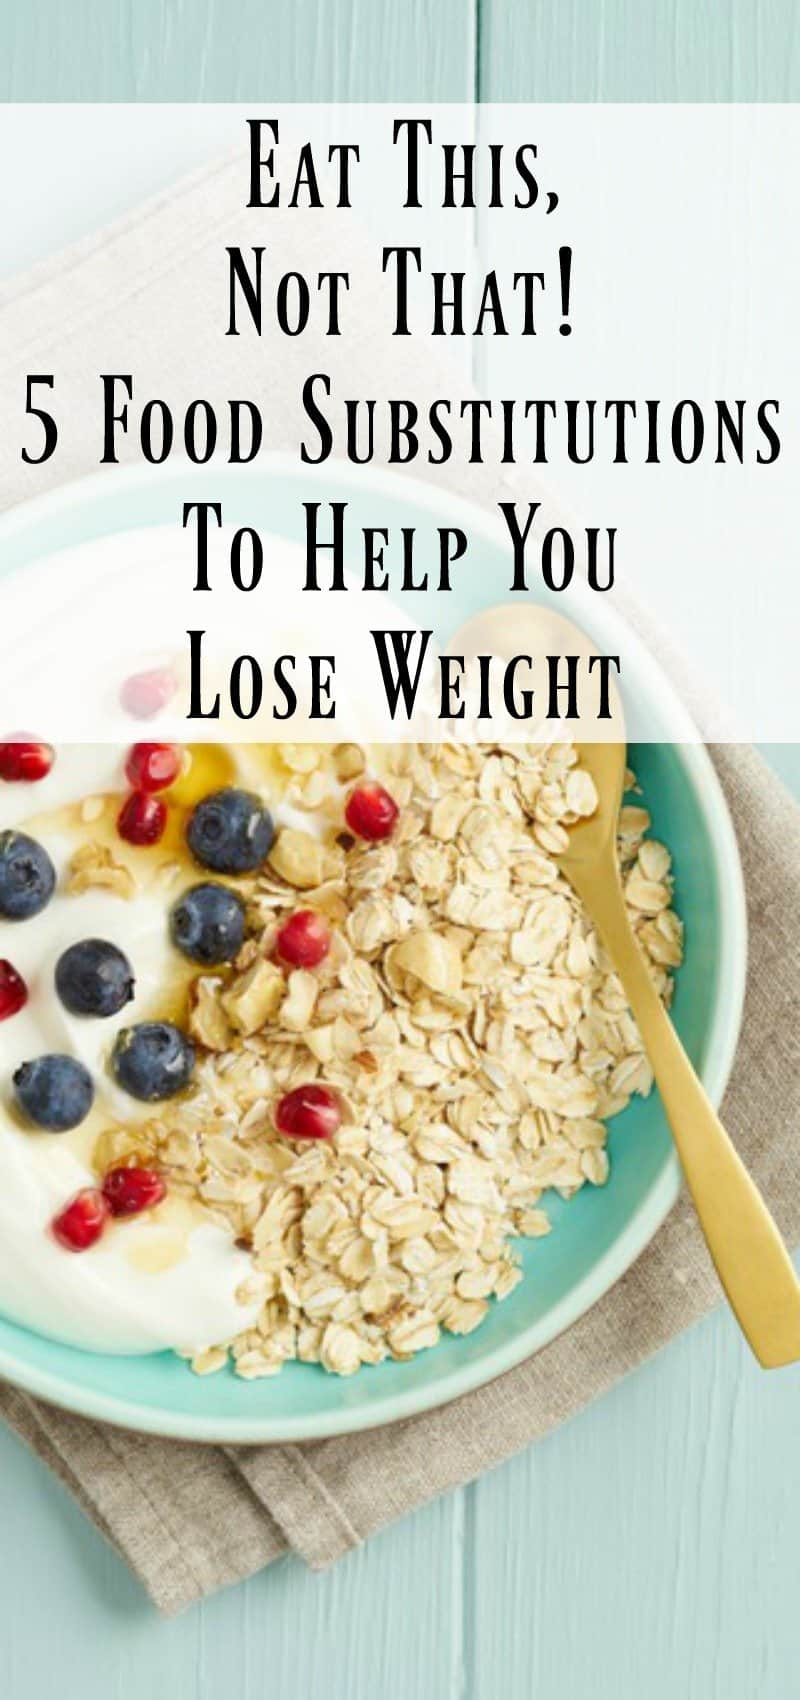 5 foods not to eat to lose weight